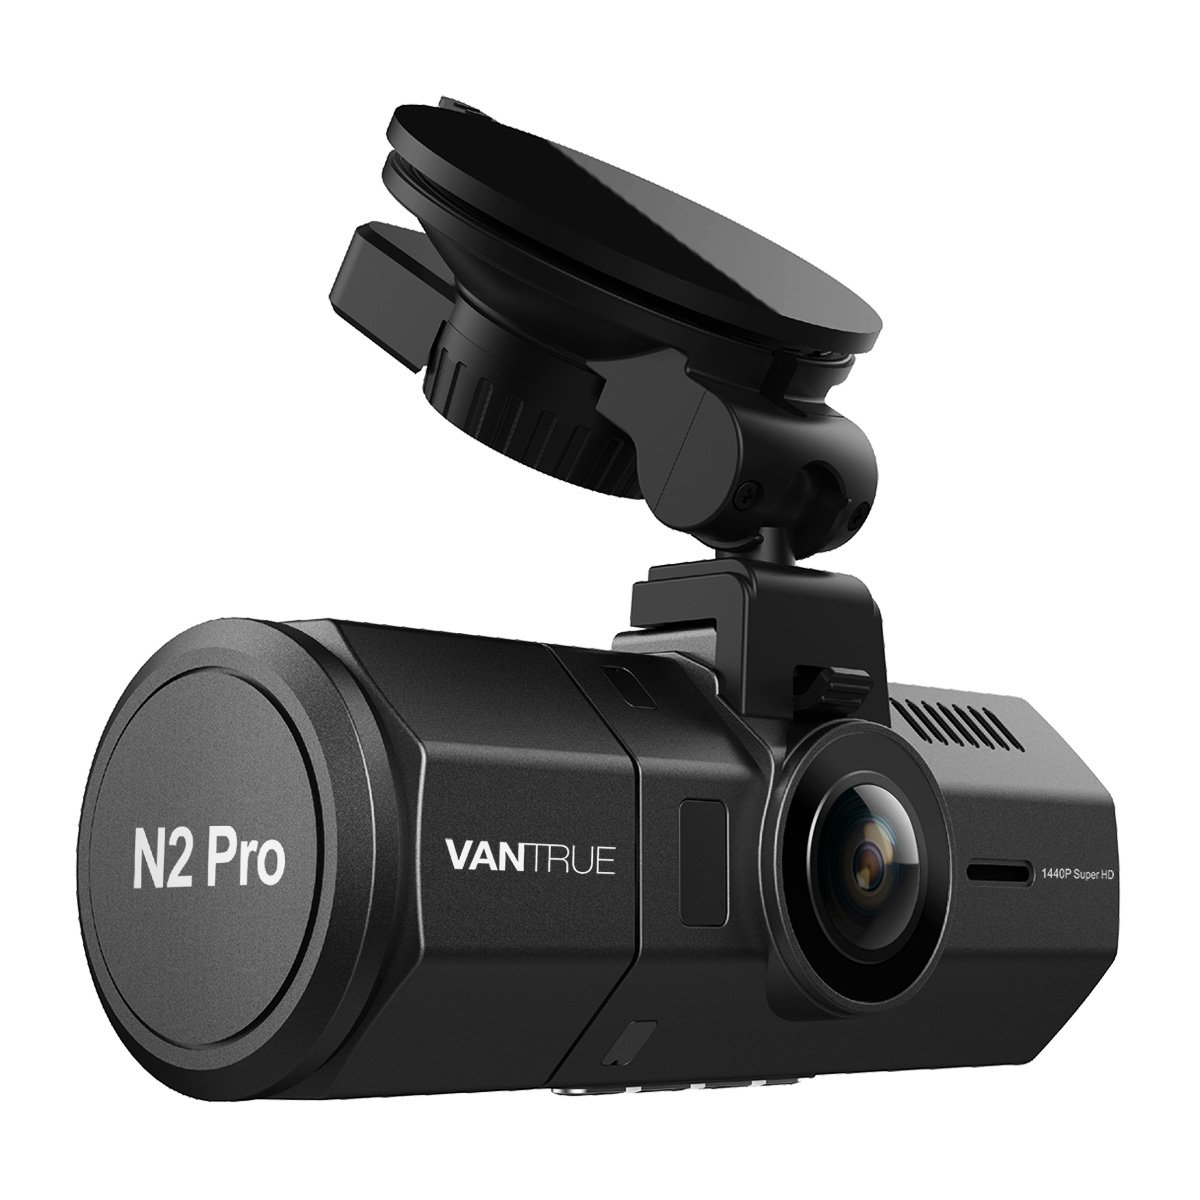 Vantrue N2 Pro Dual Dash Cam Dual 1920x1080P Front and Rear Dash Cam (2.5K Single Front Recording) 1.5'' 310° Car Dashboard Camera w/Infrared Night Vision, Sony Sensor, Parking Mode, Motion Detection by VANTRUE